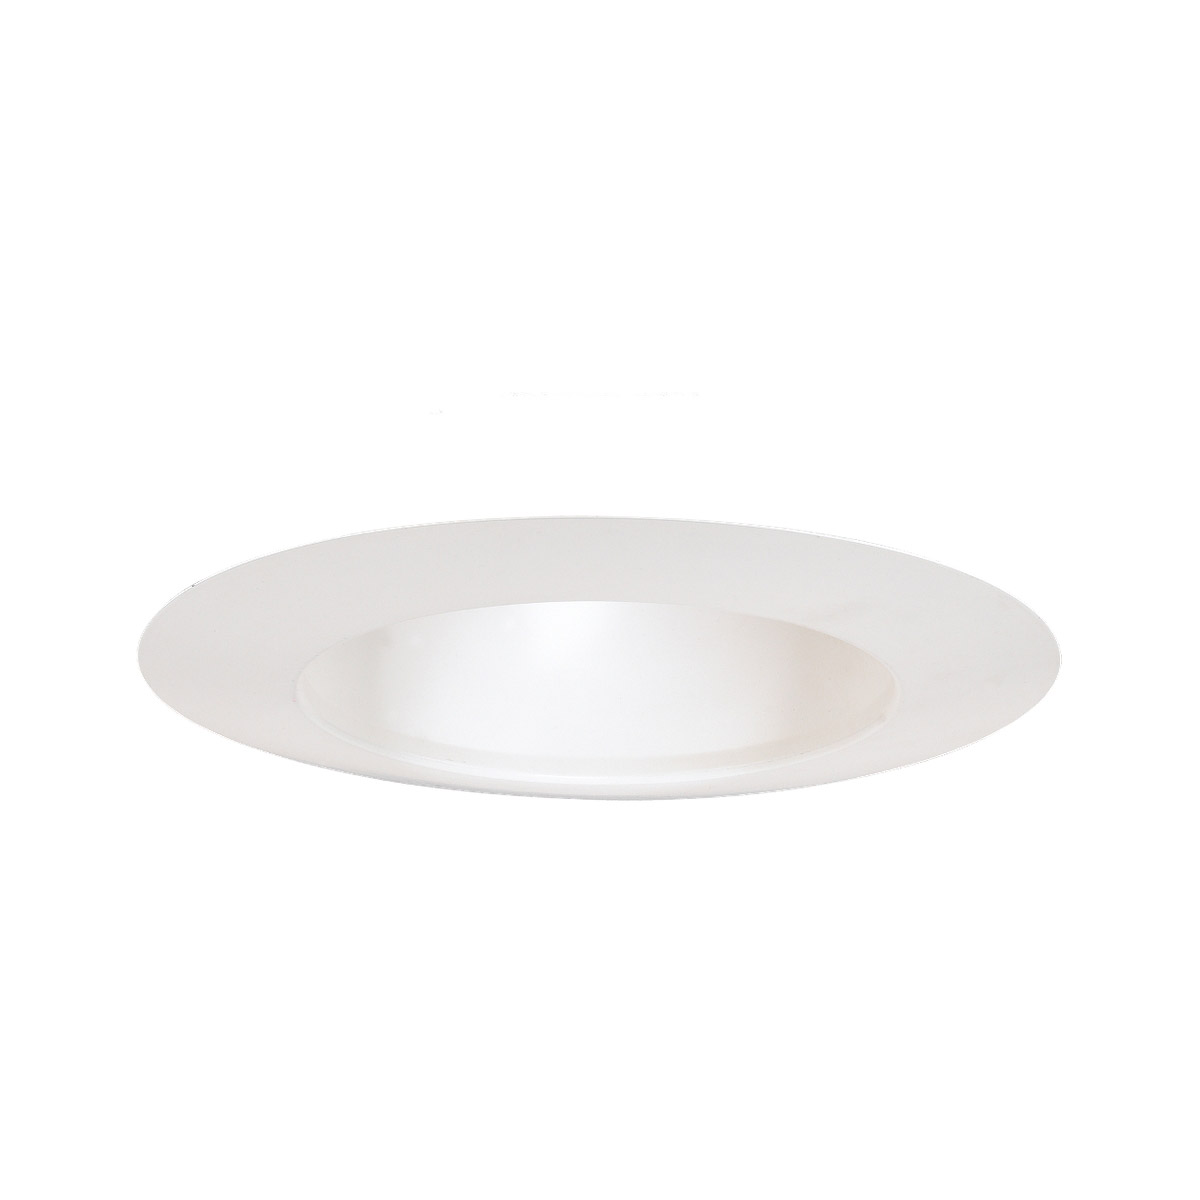 Sea Gull Lighting Signature Recessed Light in White 11023AT-15 photo